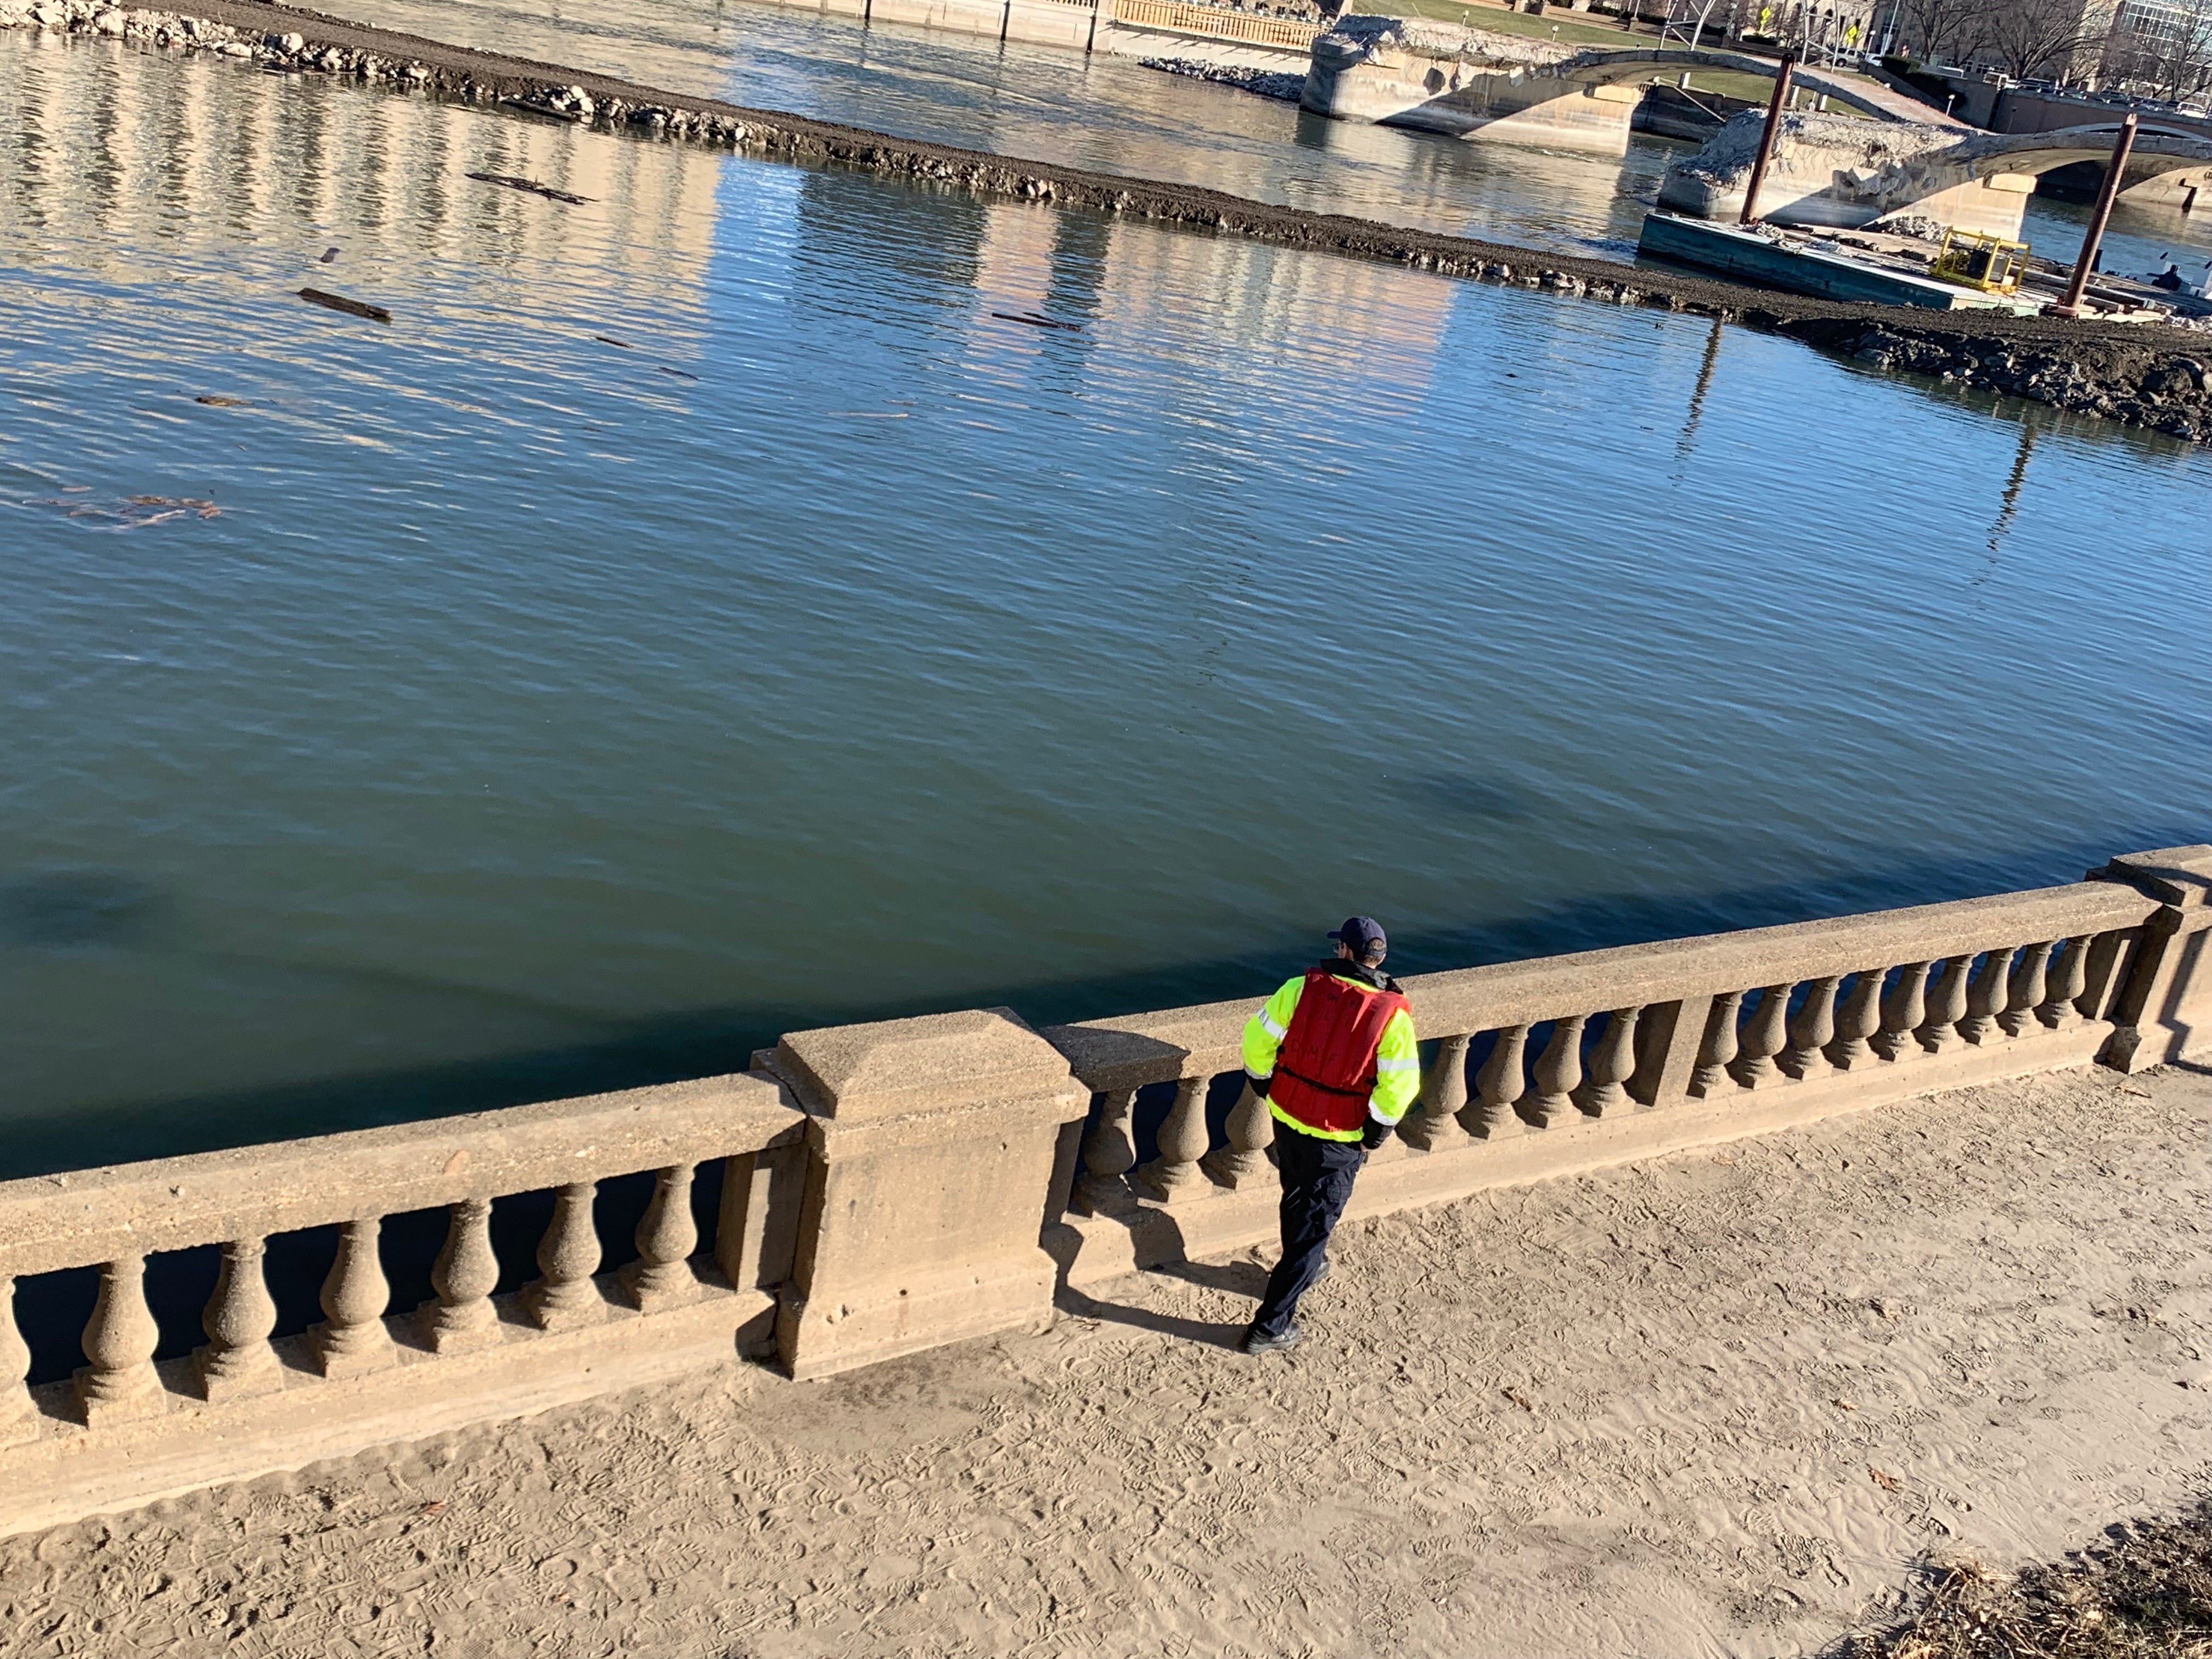 Authorities were called to downtown Des Moines for a water rescue Saturday afternoon near the Grand Avenue bridge.